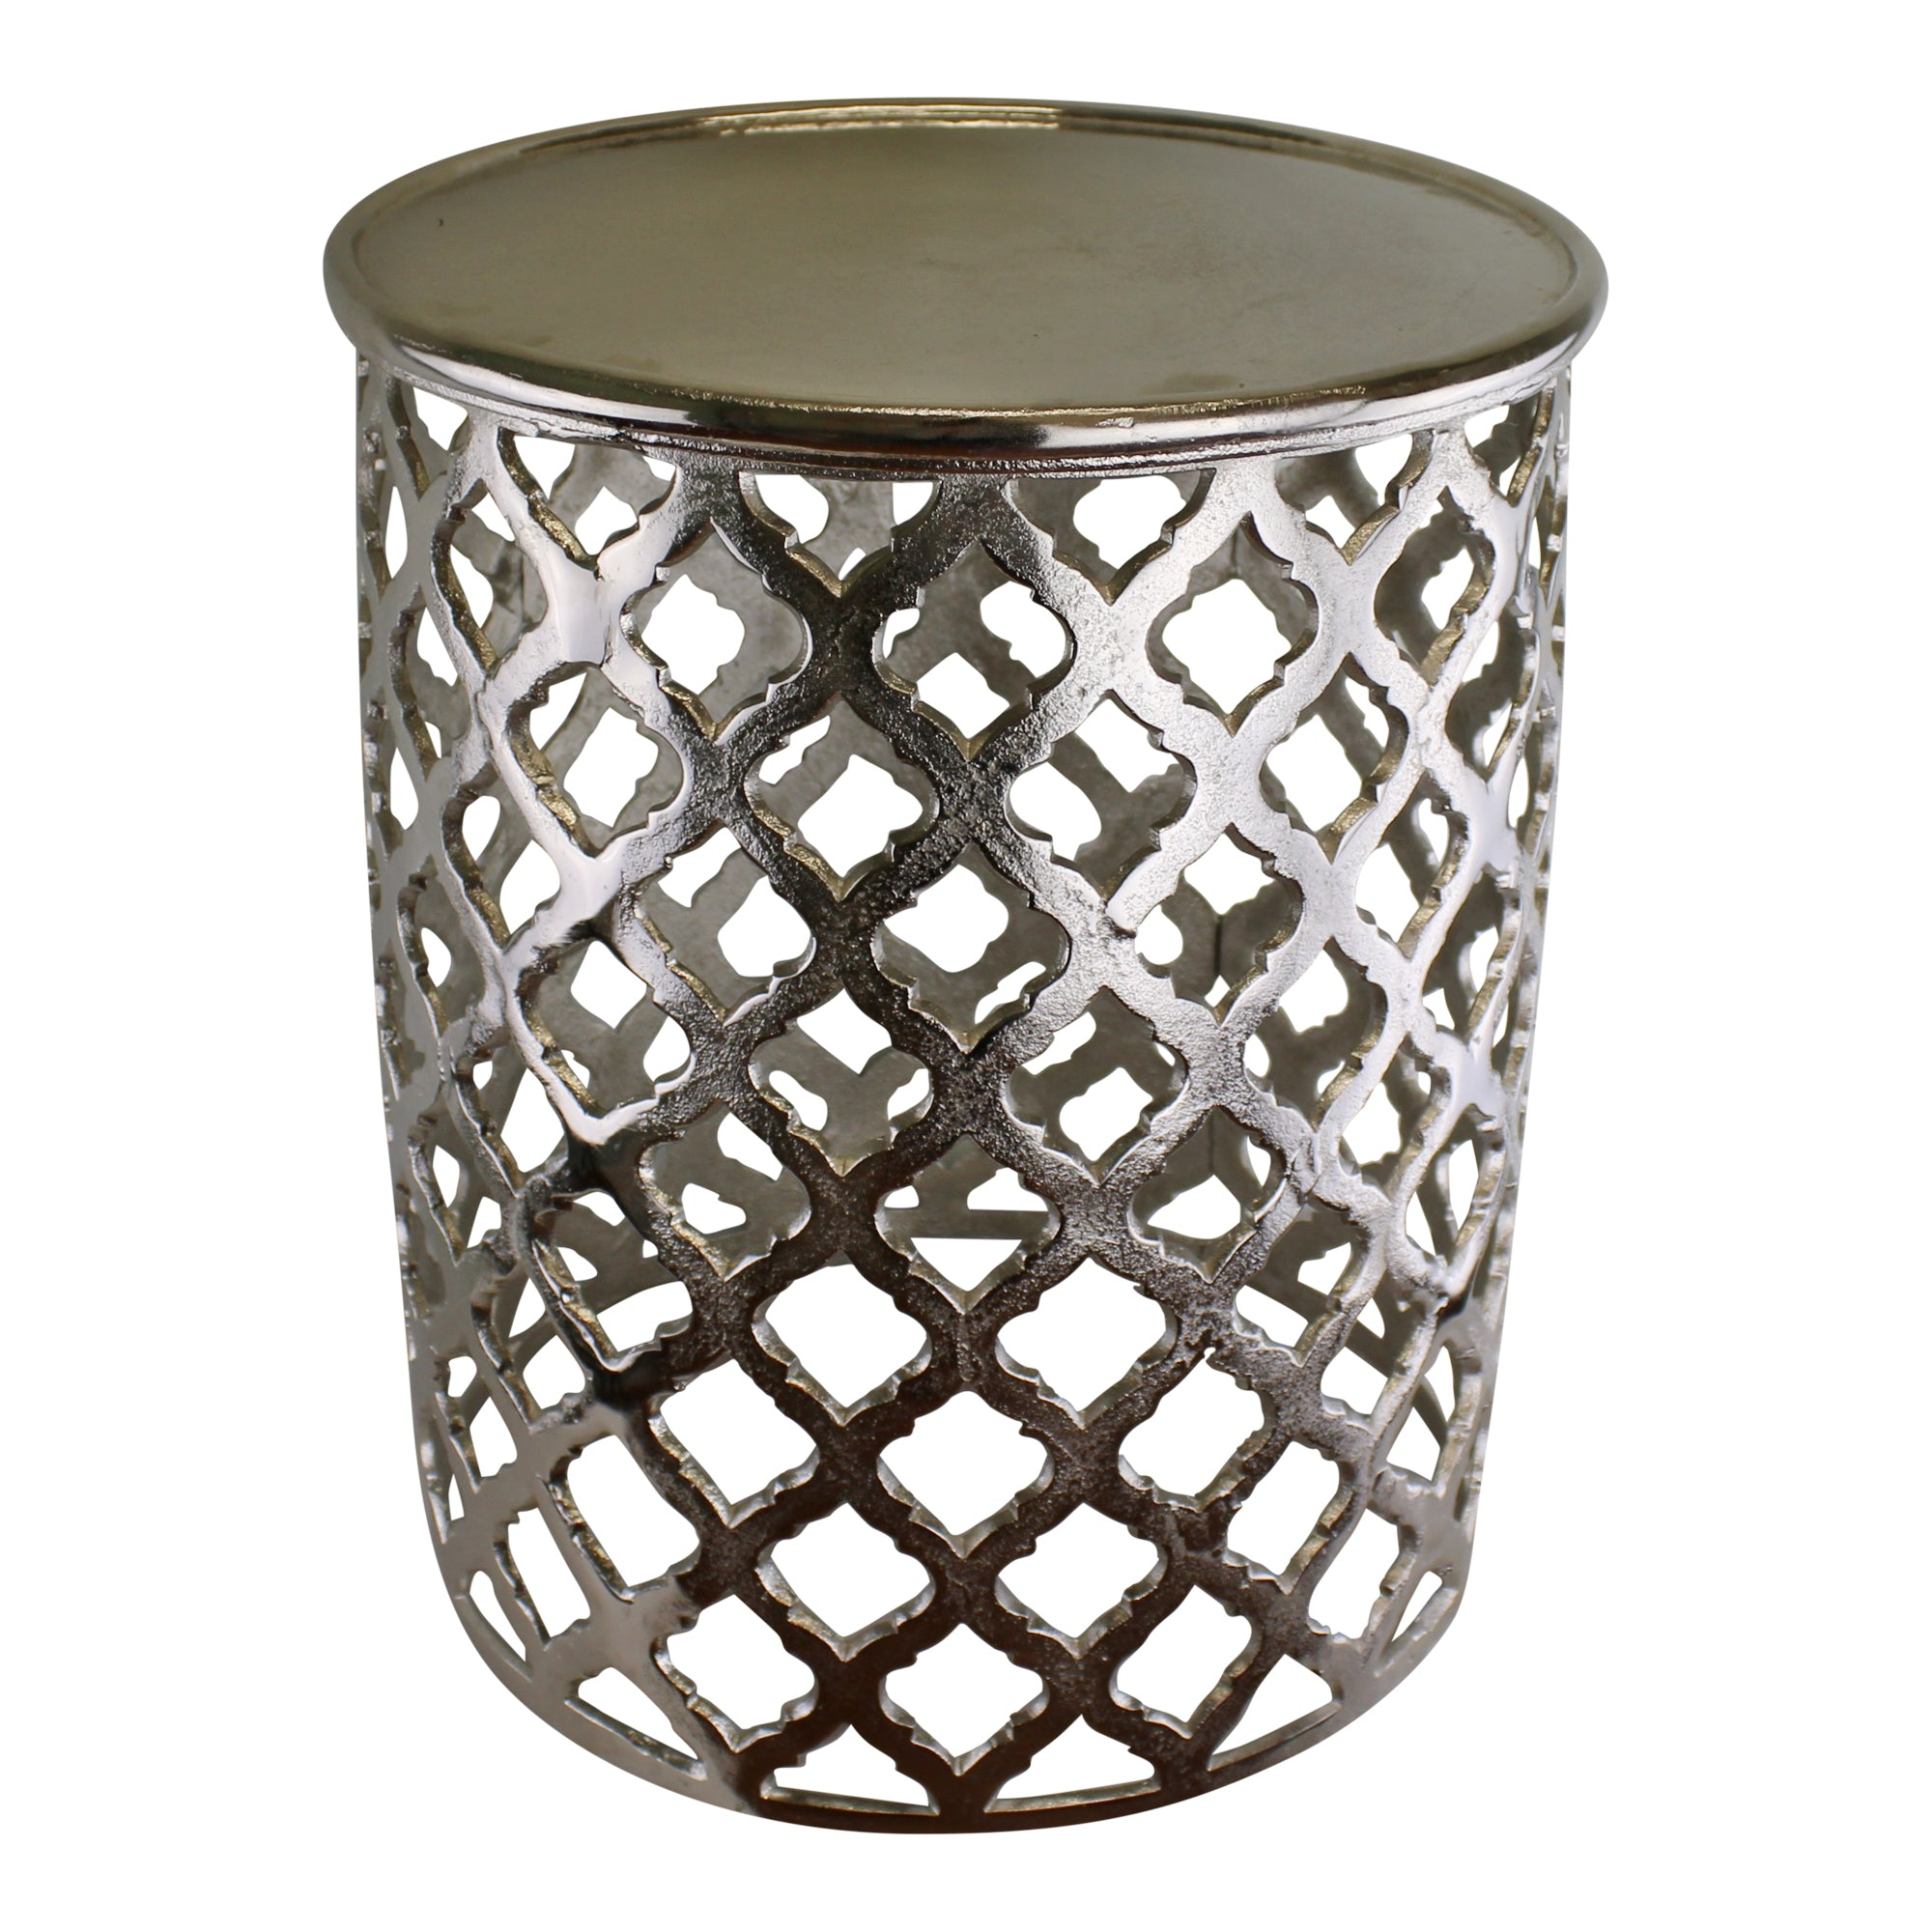 Decorative Silver Metal Side Table, Lattice design, Furniture by Low Cost Gifts